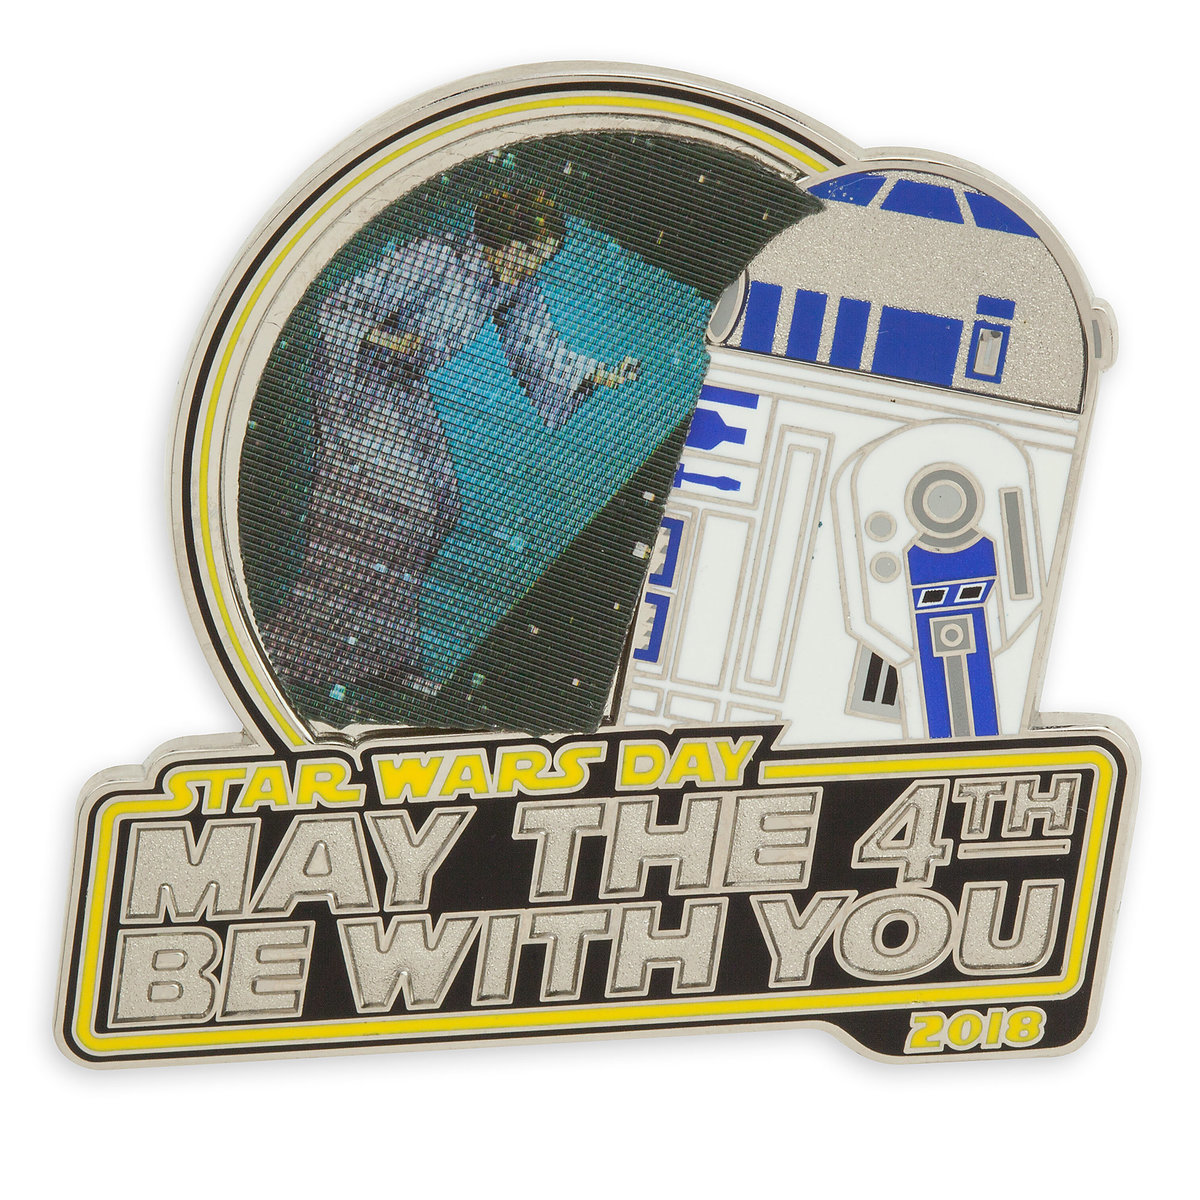 May The 4th Be With You Lego 2018: Star Wars May The 4th Pin Out Now